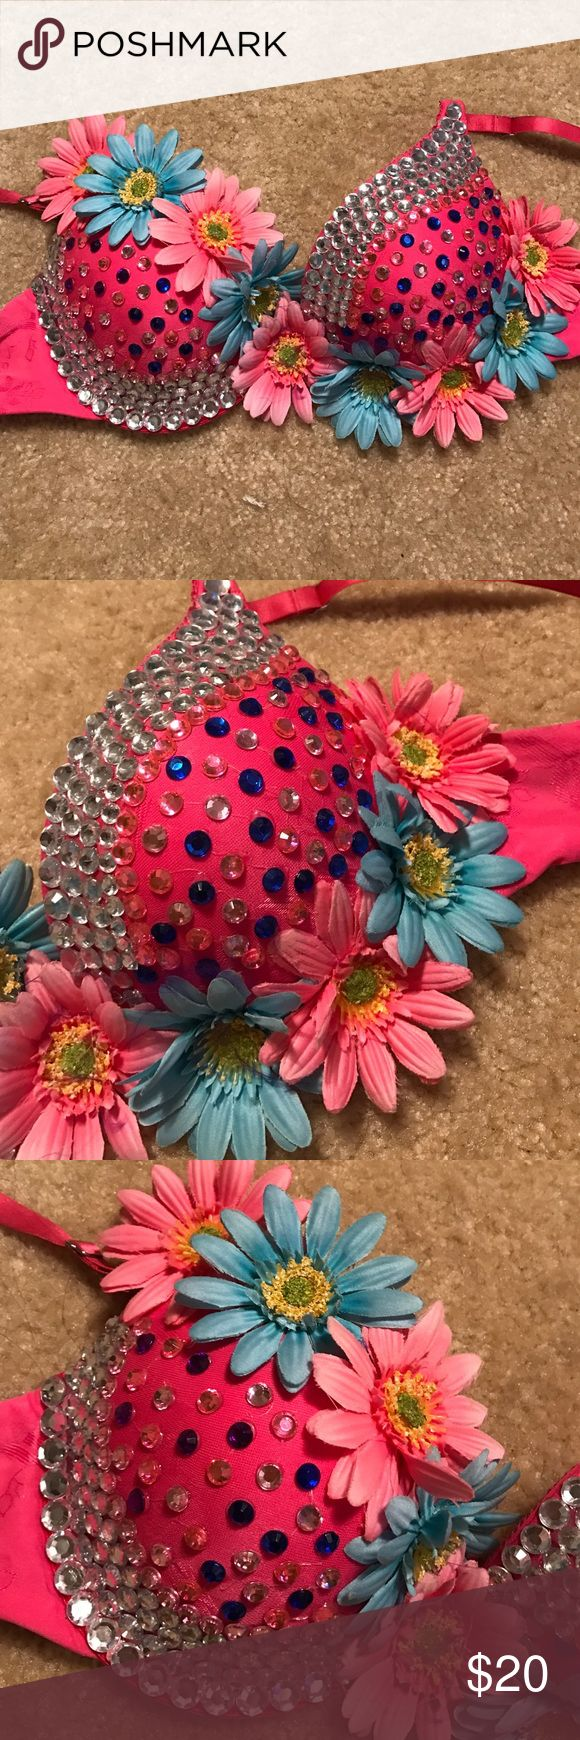 Pink and blue daisy rave bra Pink and blue daisy rave bra. Worn once. Excellent condition. Handmade. Size 34/b Intimates & Sleepwear Bras